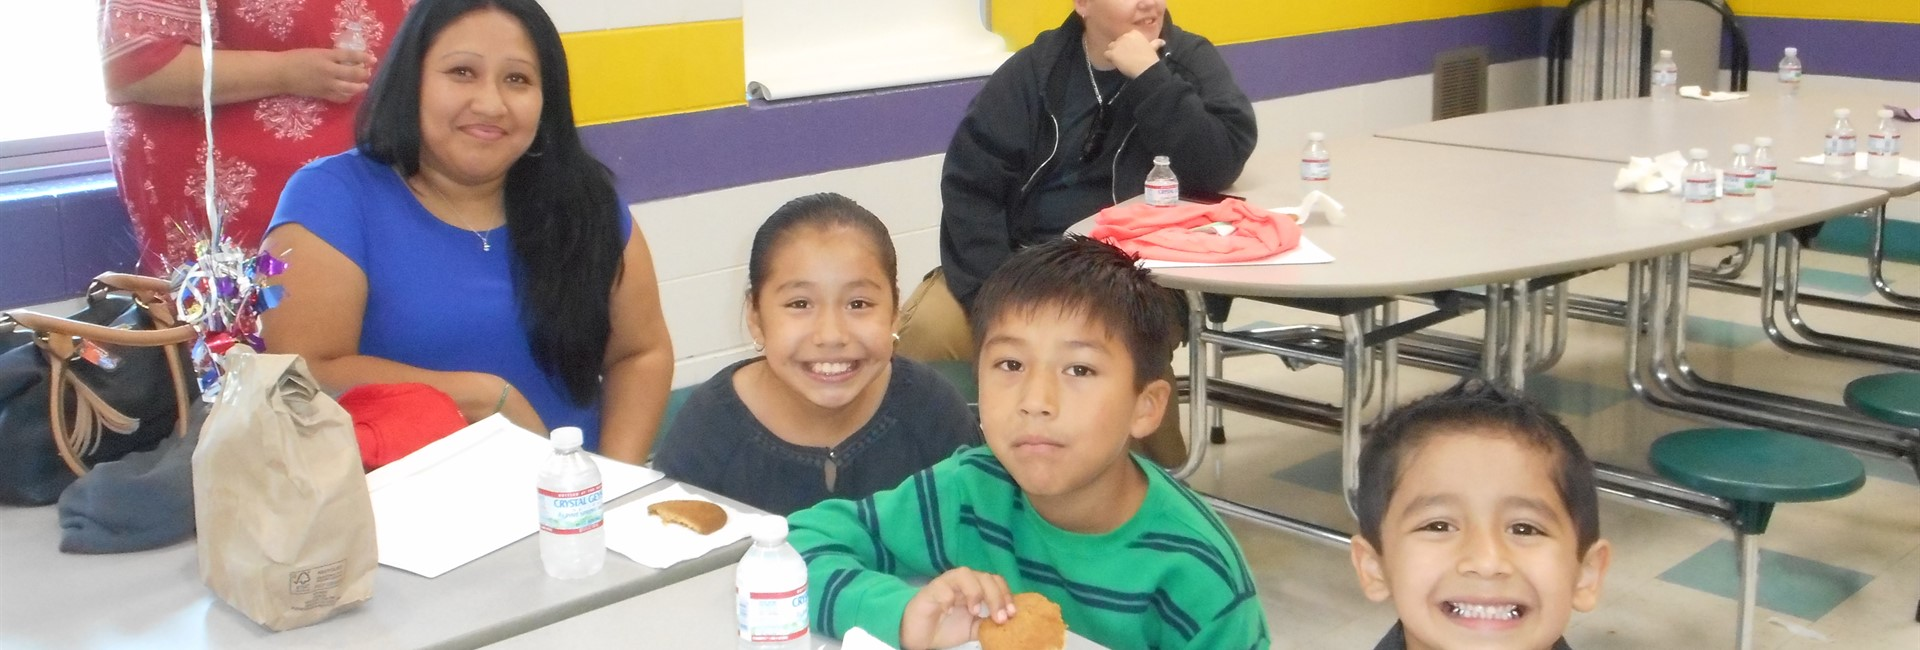 The De Dios Family enjoying cookies at Kindergarten Graduation